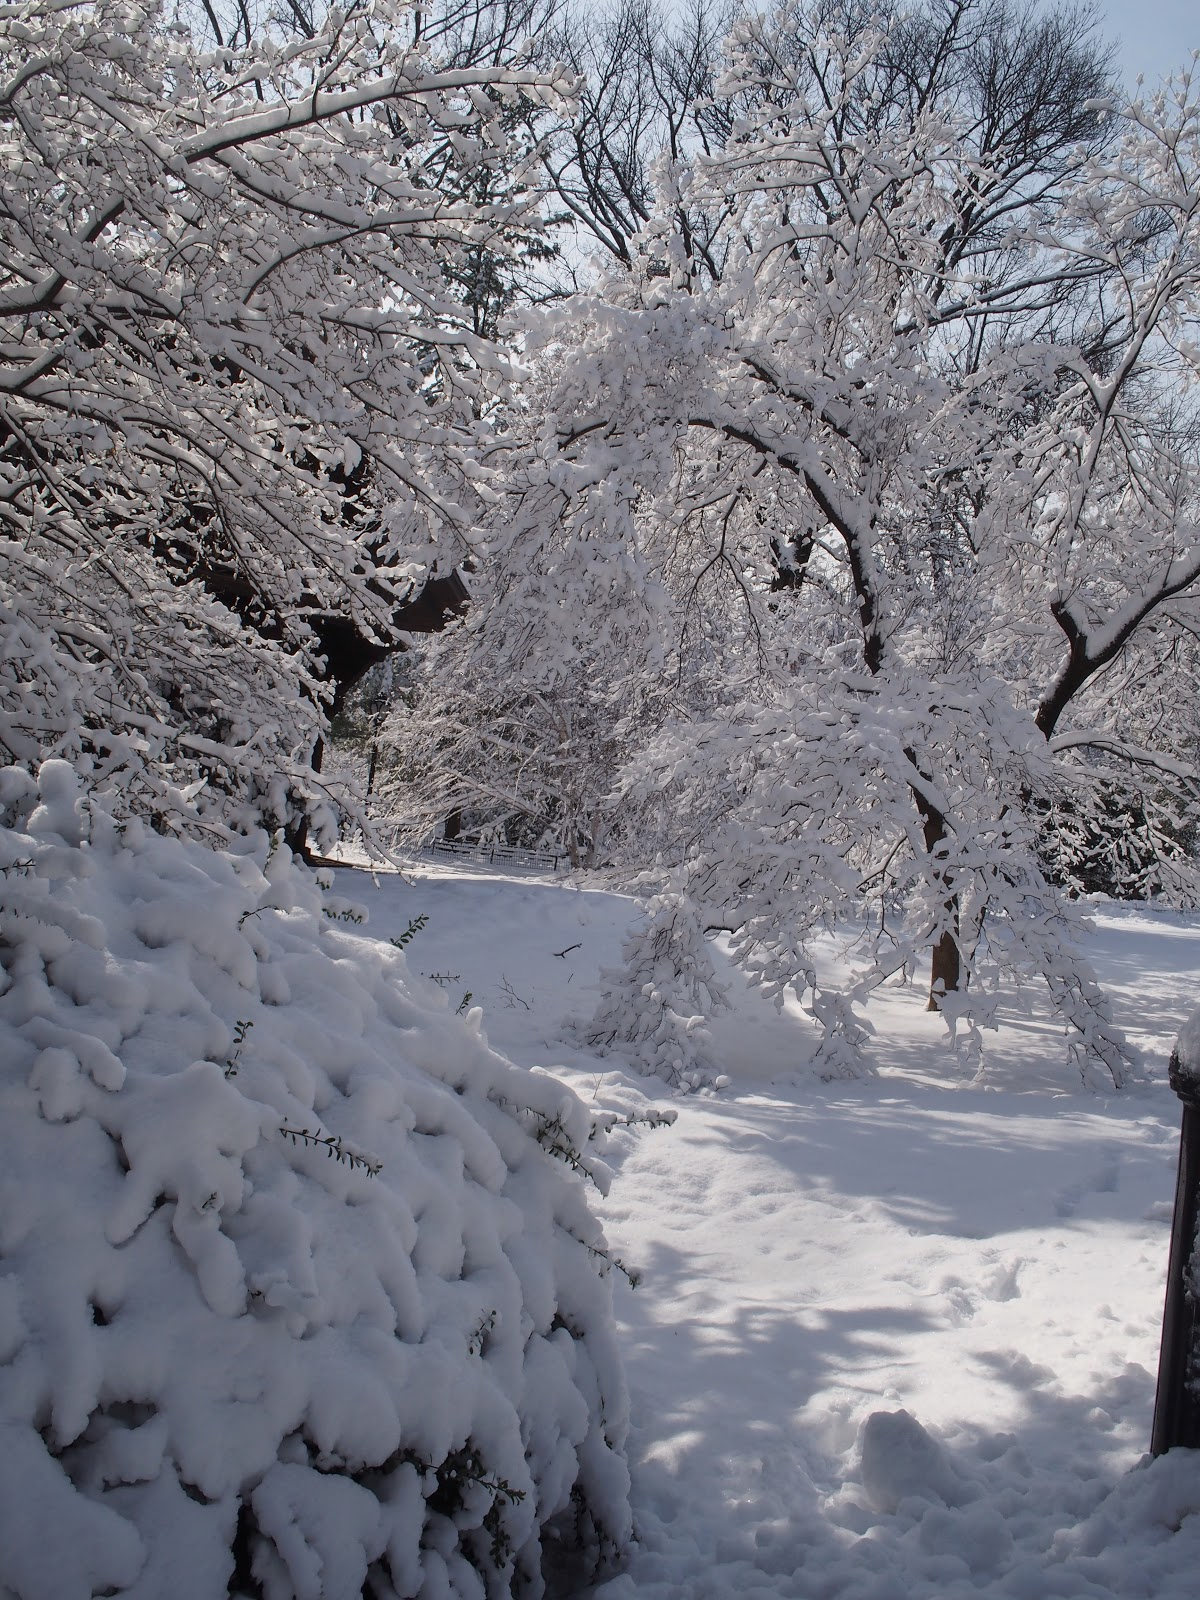 Winter Wonderland, #centralpark #nyc #snow 2013